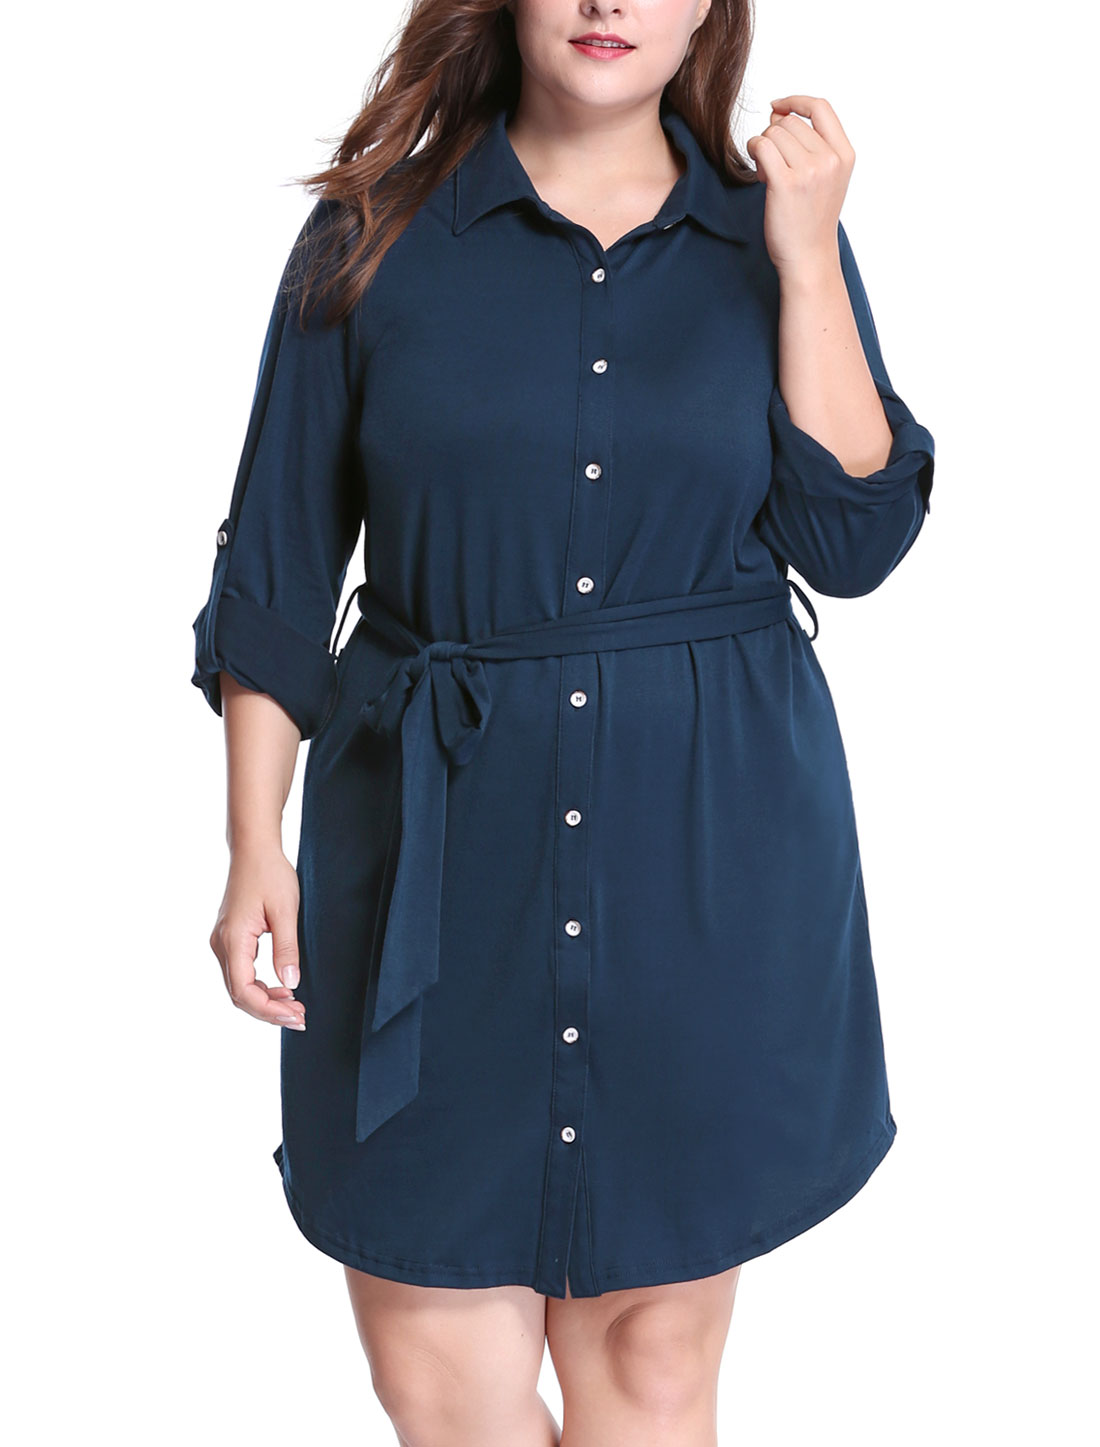 Women Plus Size Roll Up Sleeves Above Knee Belted Shirt Dress Blue 1X